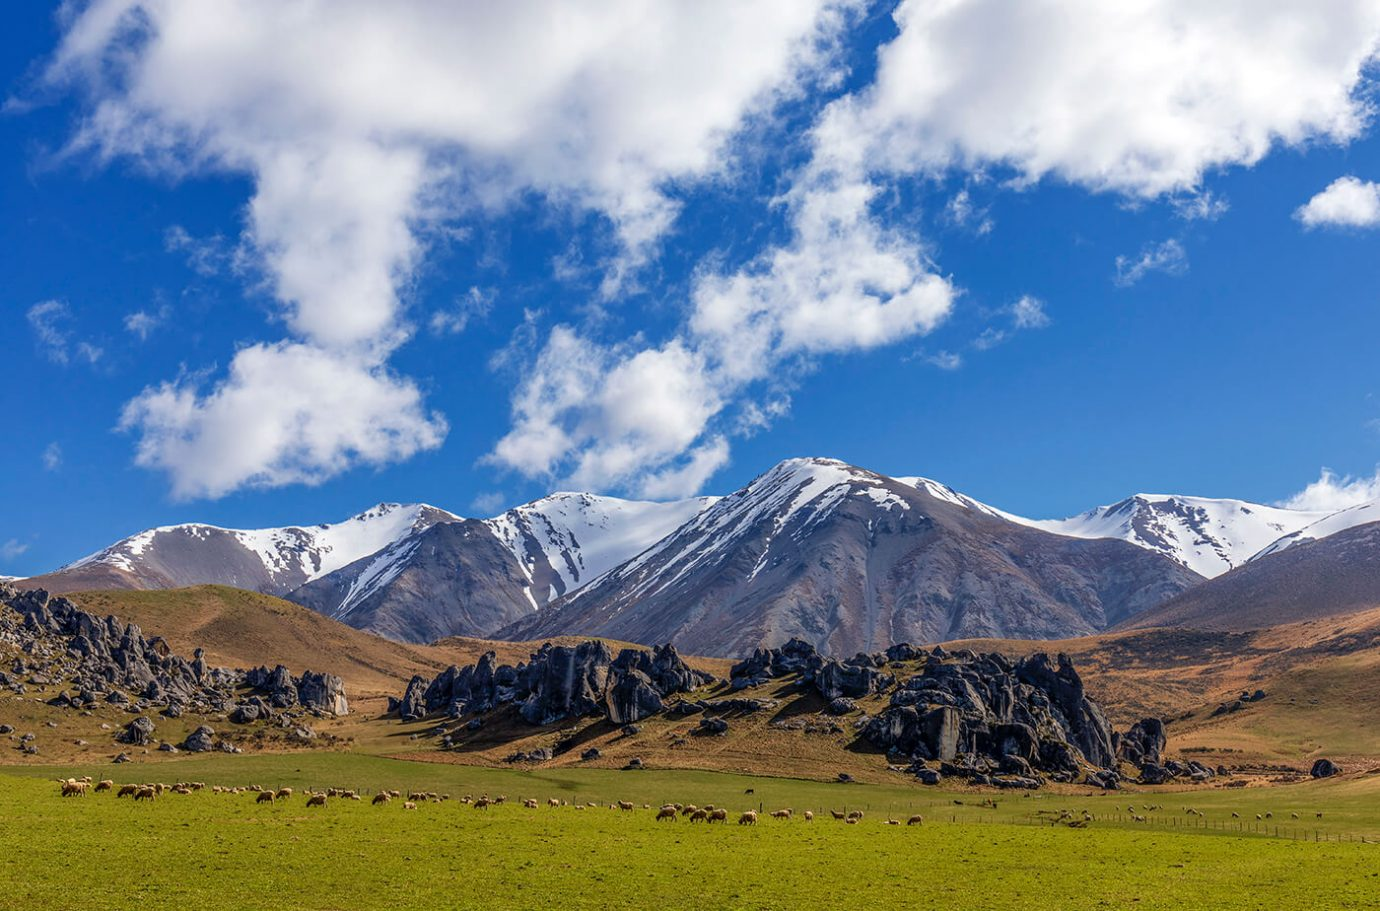 Snow Capped Mountains, Arthur's Pass, New Zealand